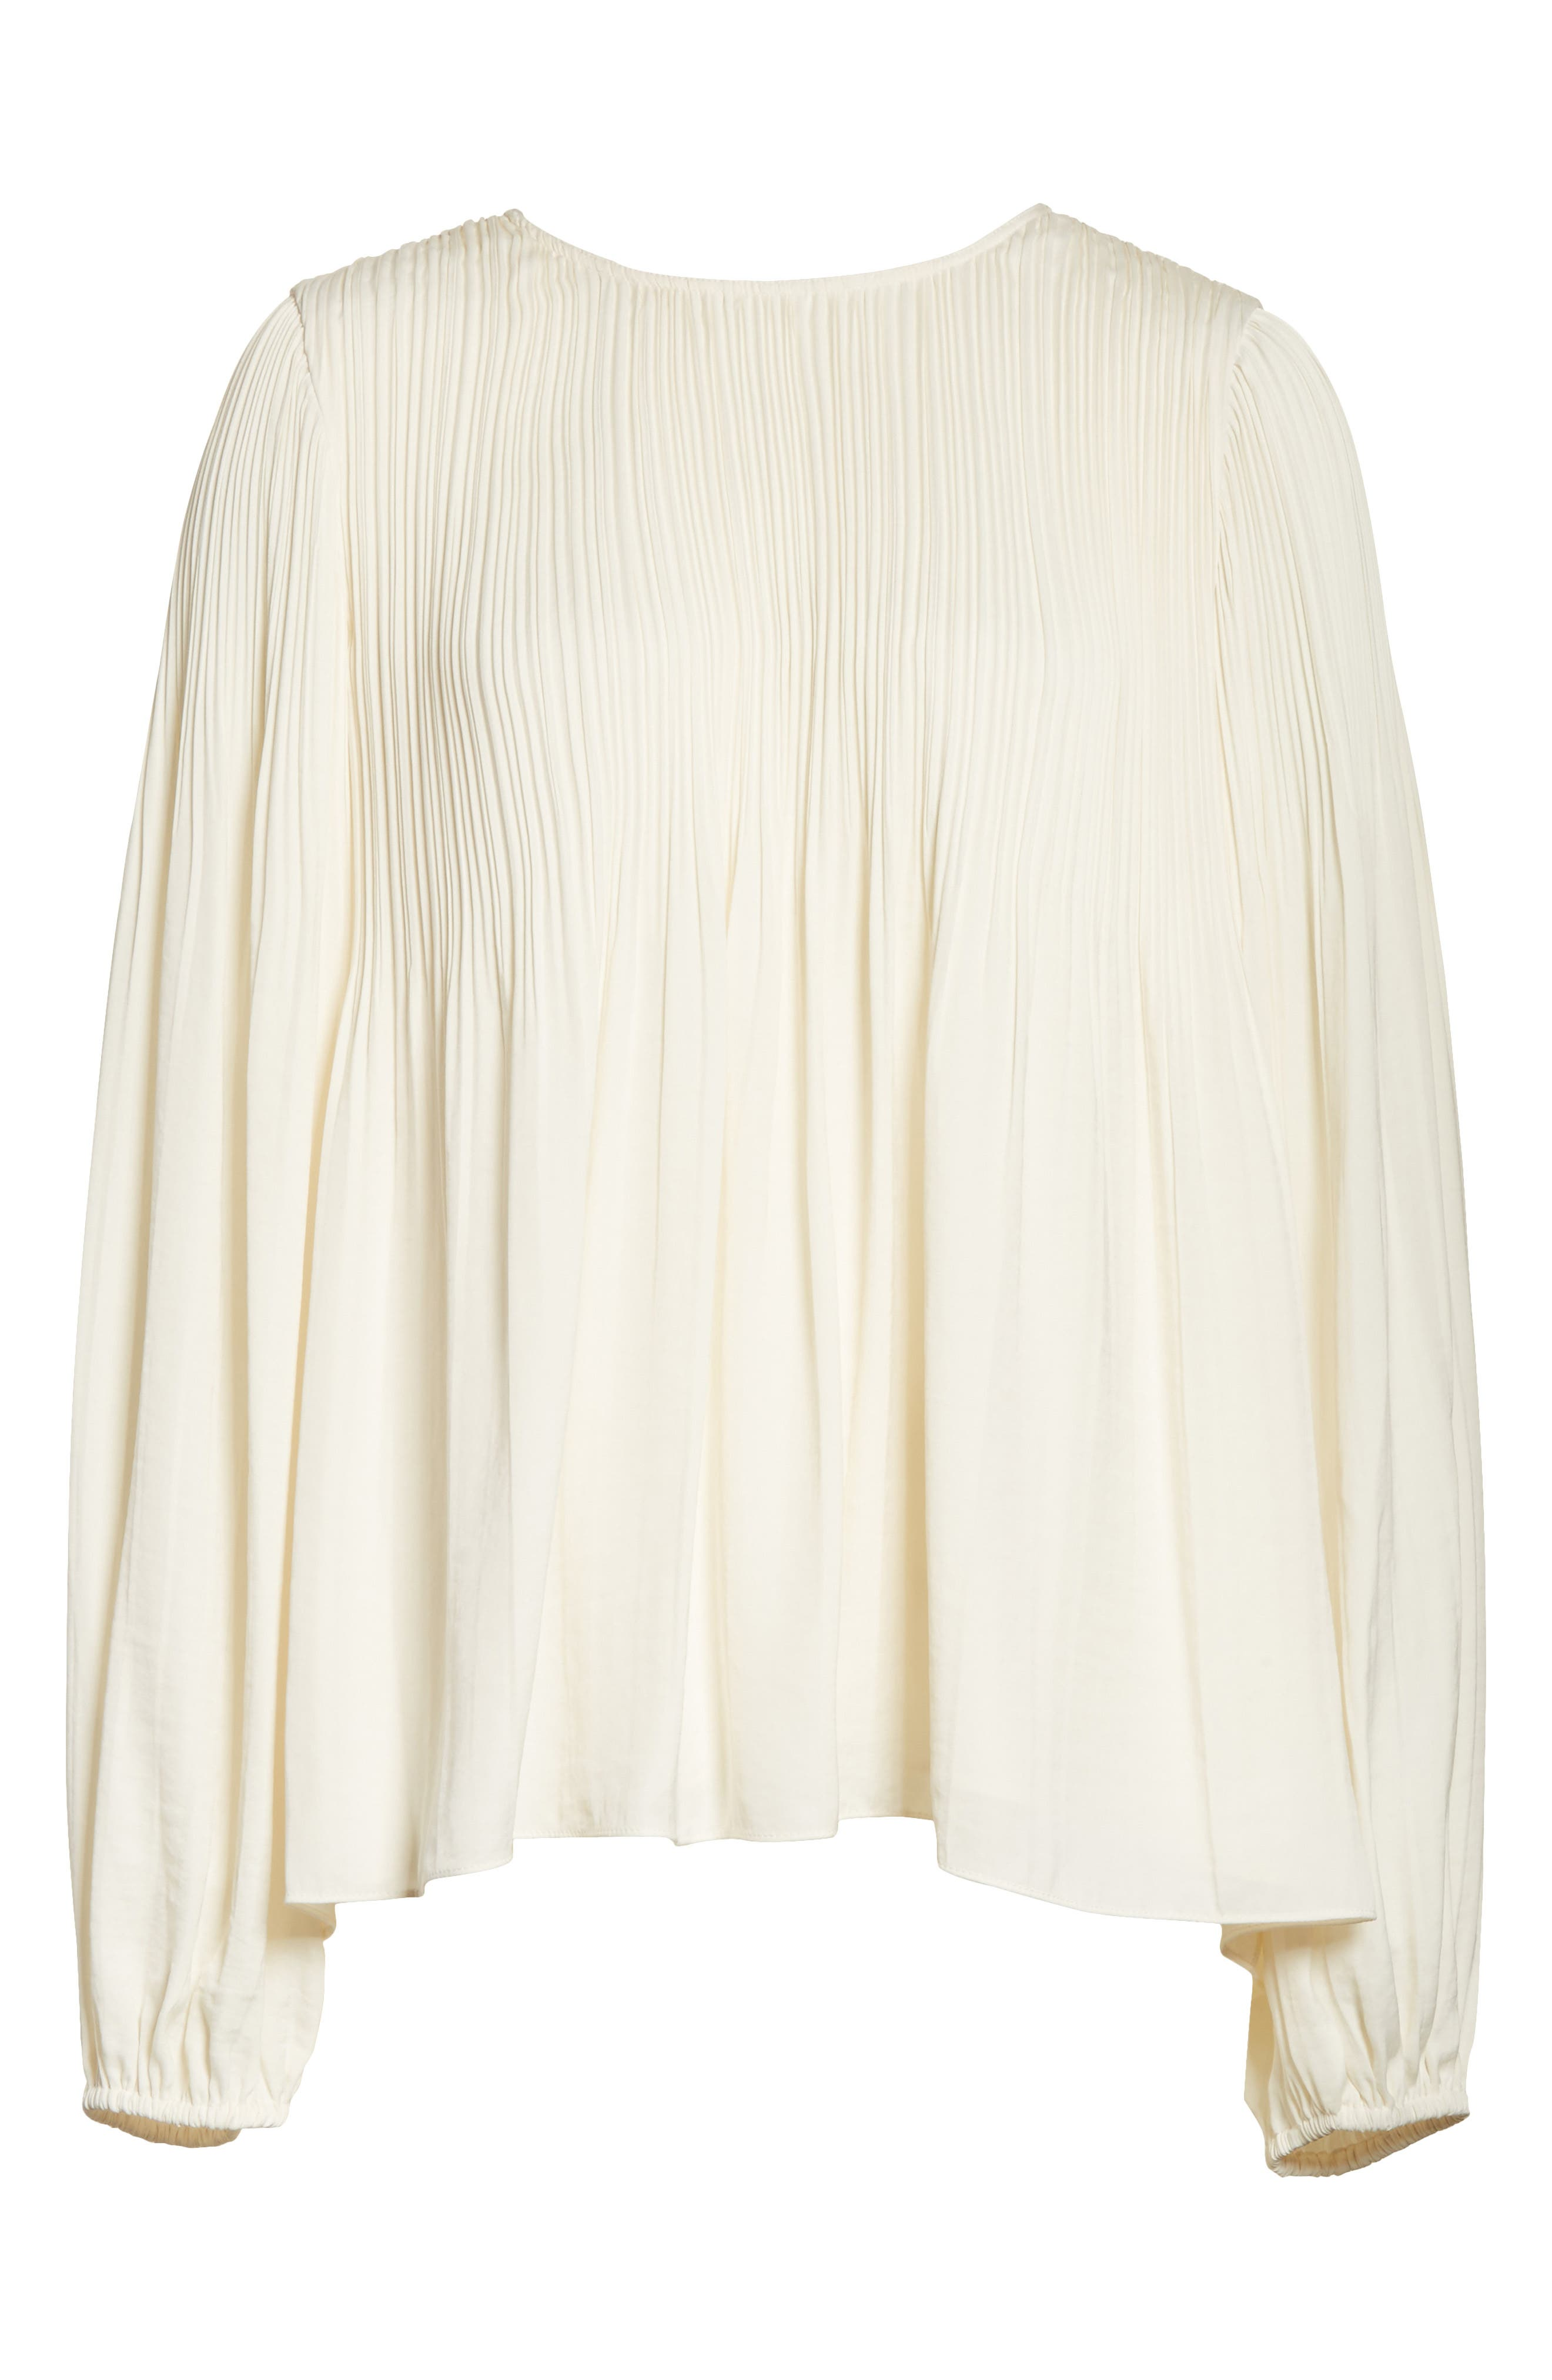 Grove Pleated Blouse,                             Alternate thumbnail 6, color,                             Alabaster